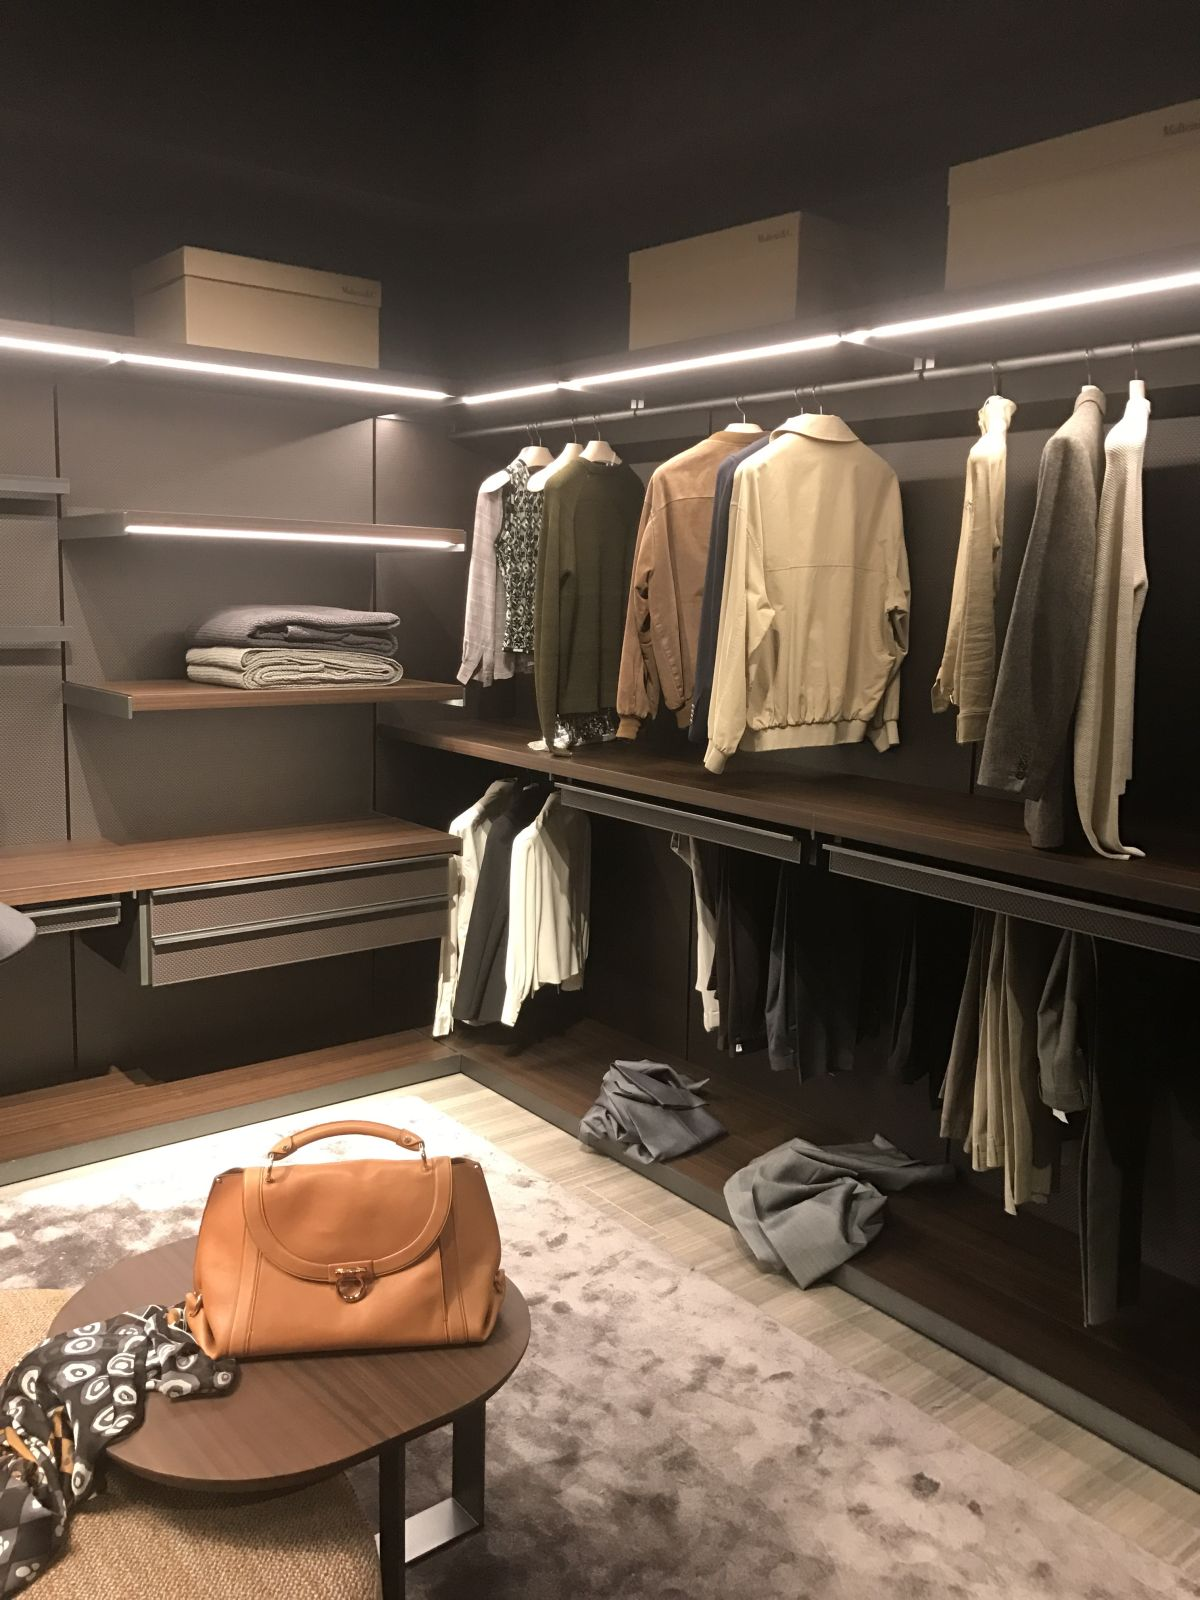 Open shelves are really useful in closets and storage areas in general. They mix well with drawers